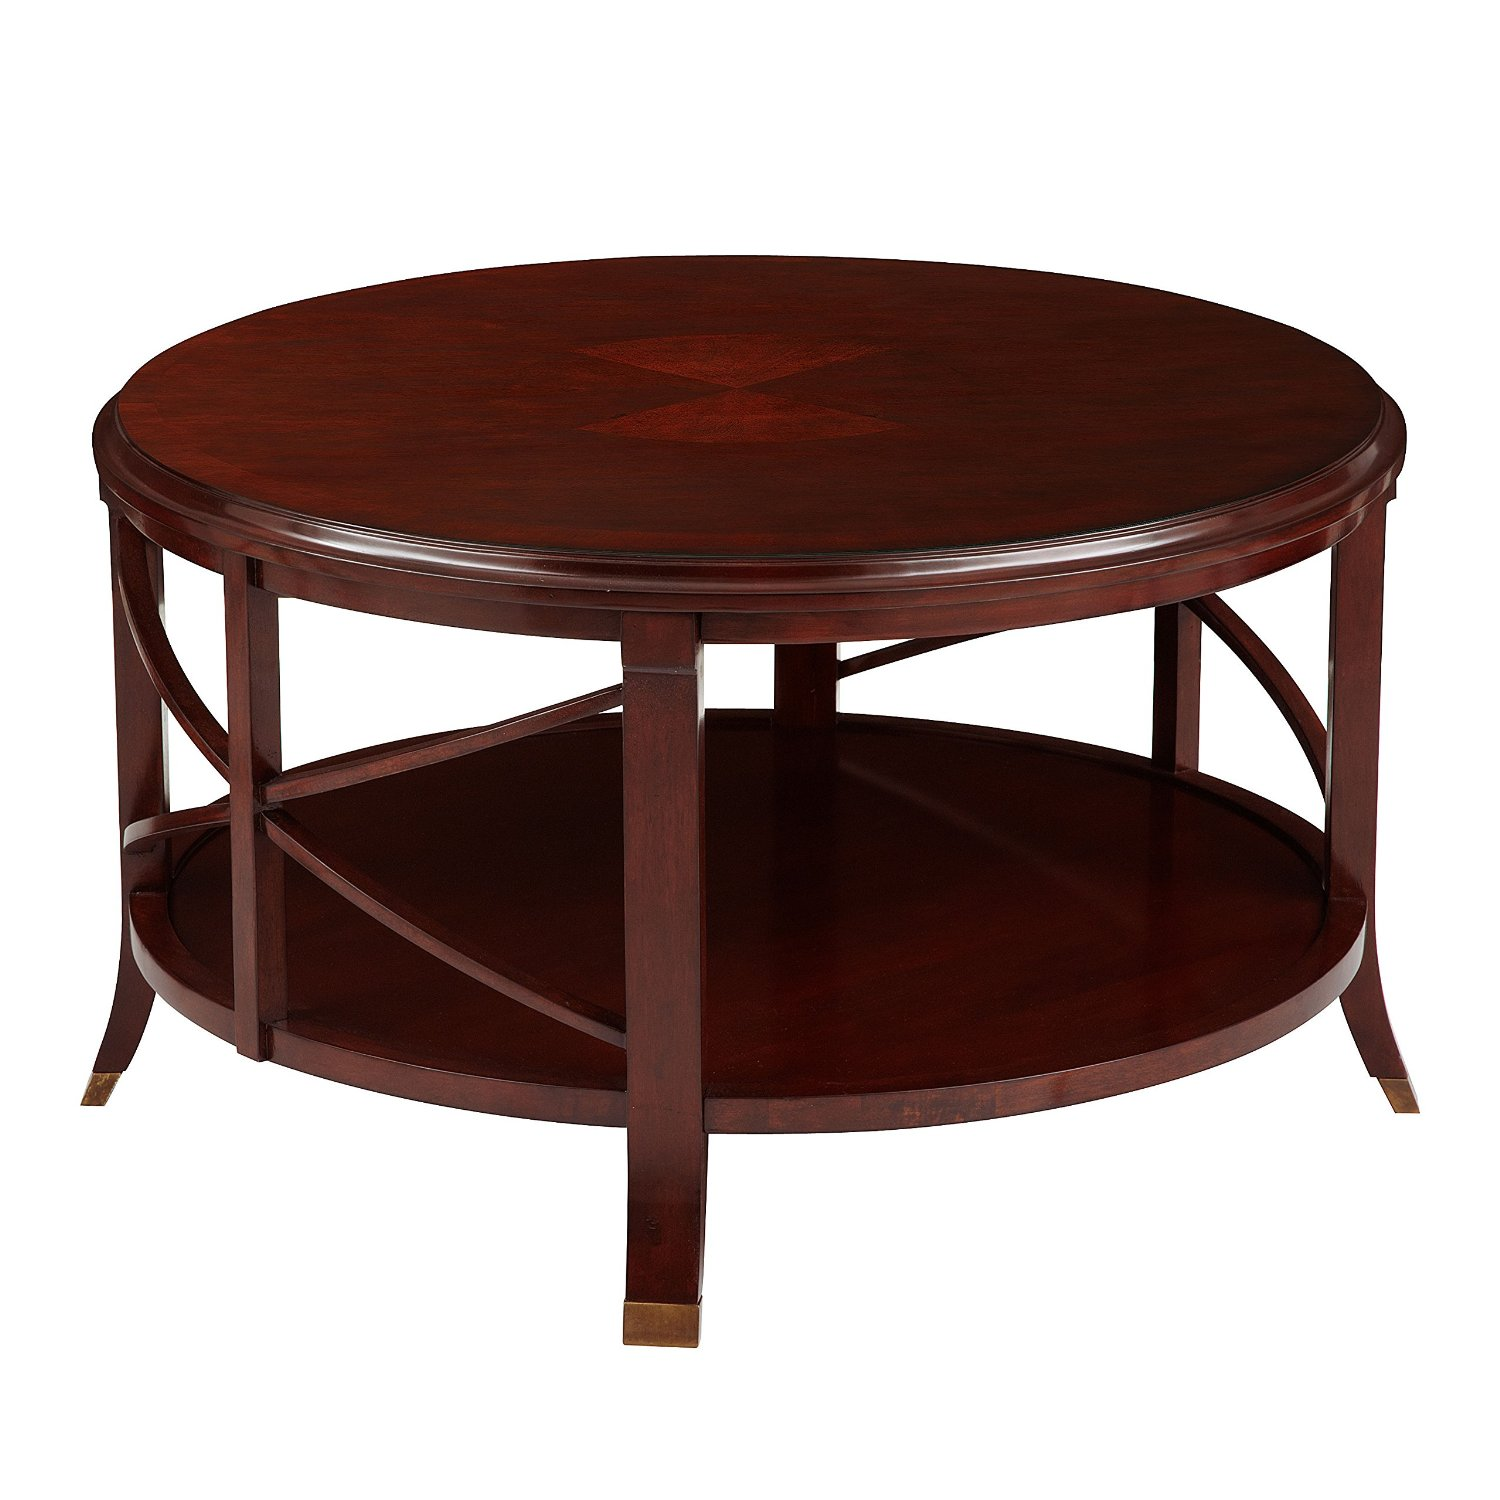 Awesome Buy Bombay Company Pavilion Console Table Antique Mahogany Lamtechconsult Wood Chair Design Ideas Lamtechconsultcom